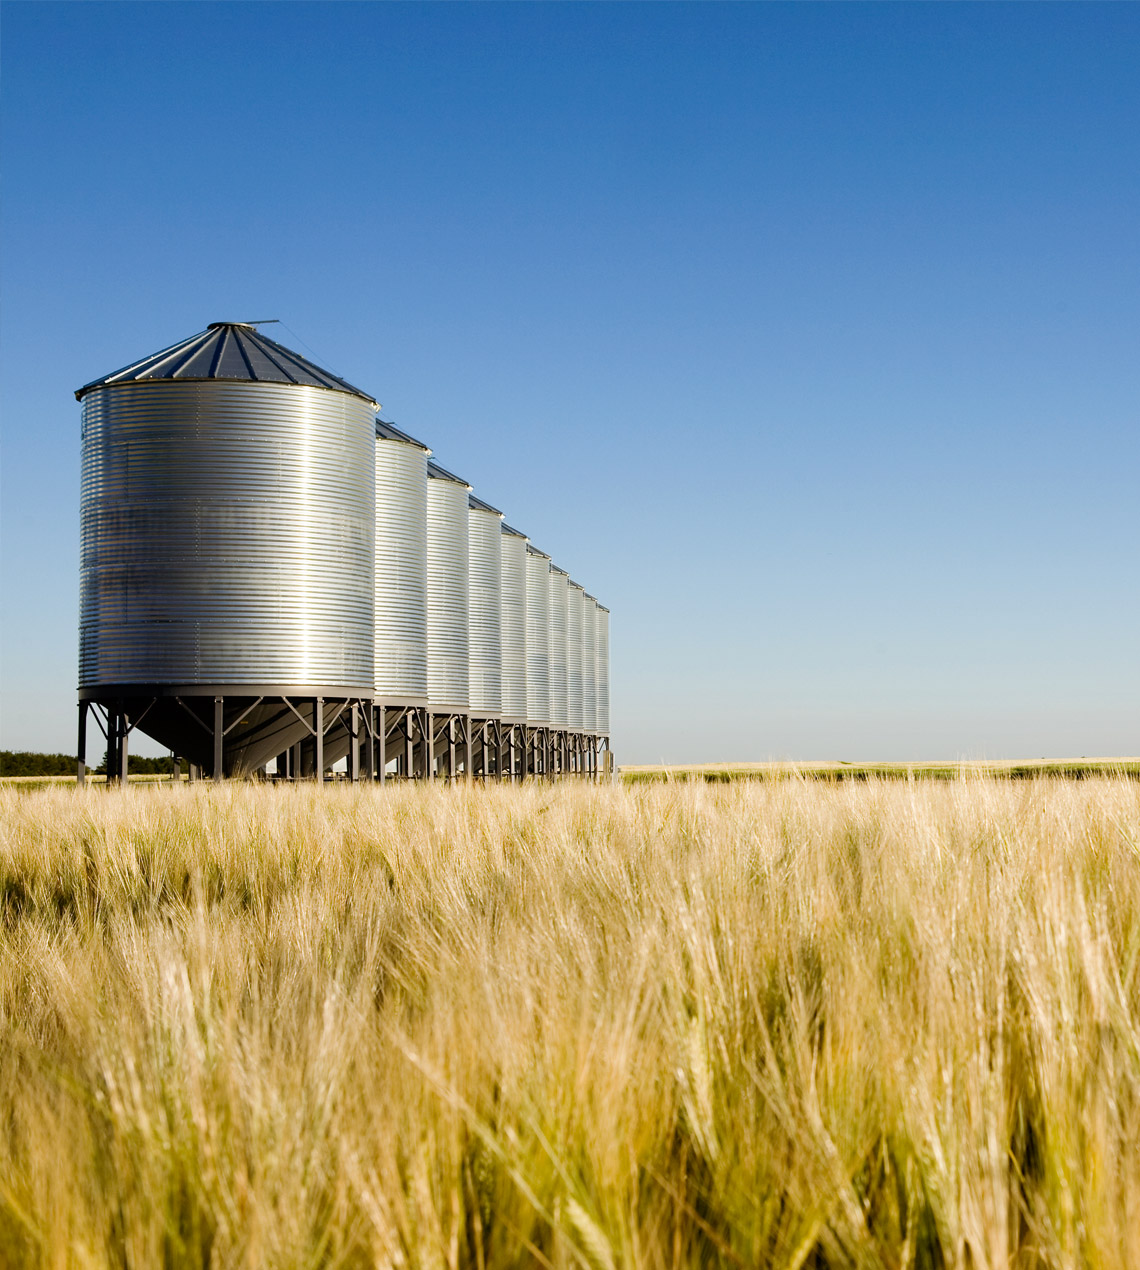 photo of grain silos